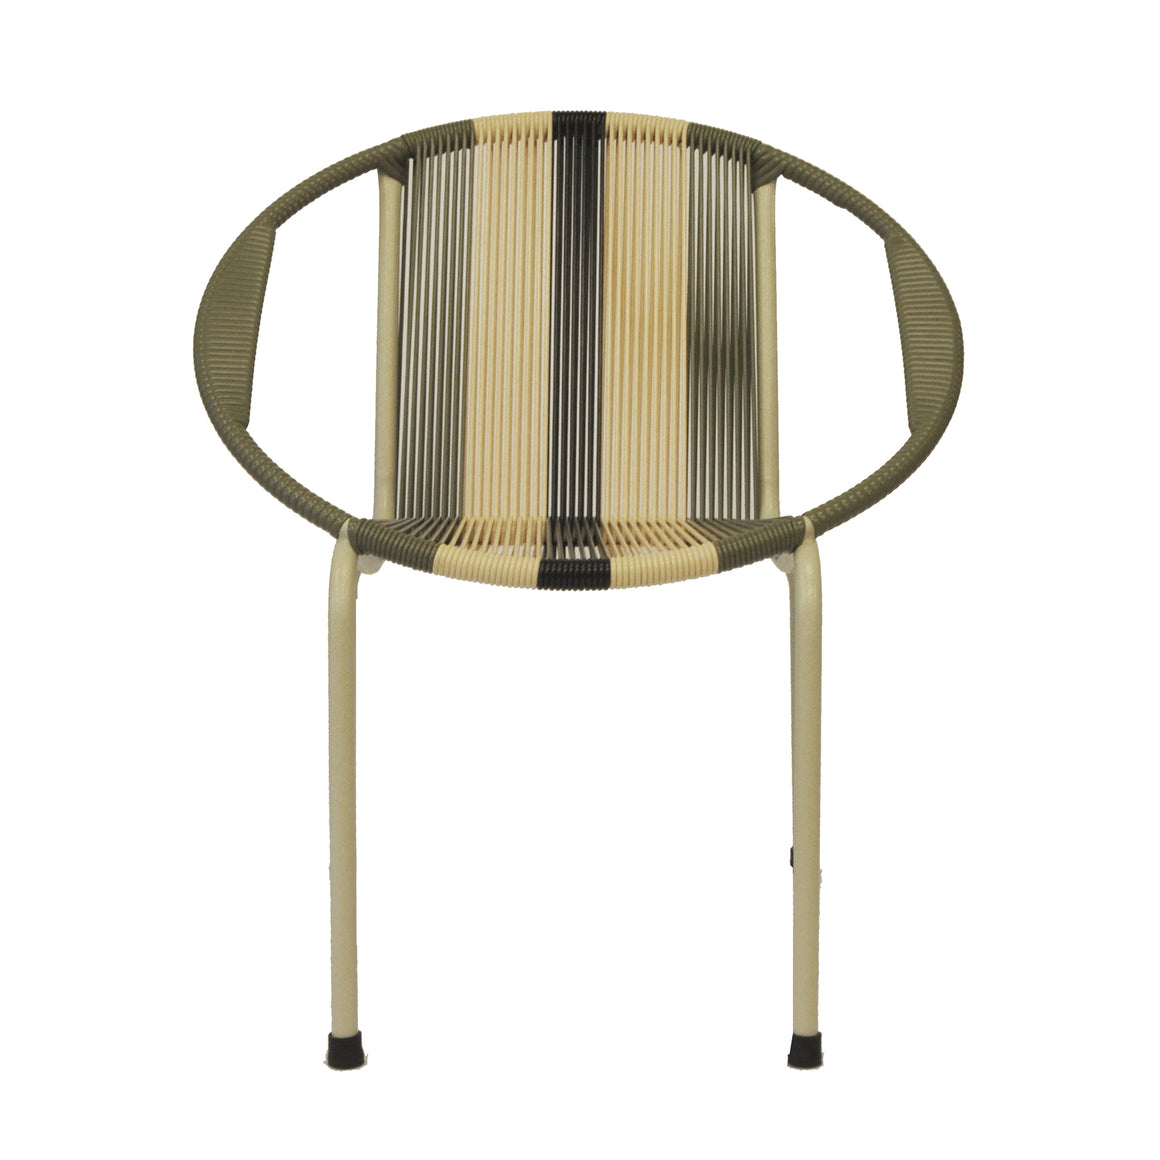 Merdeka Chair Lounge Tropicalia 2020 (Olive Green + Beige)